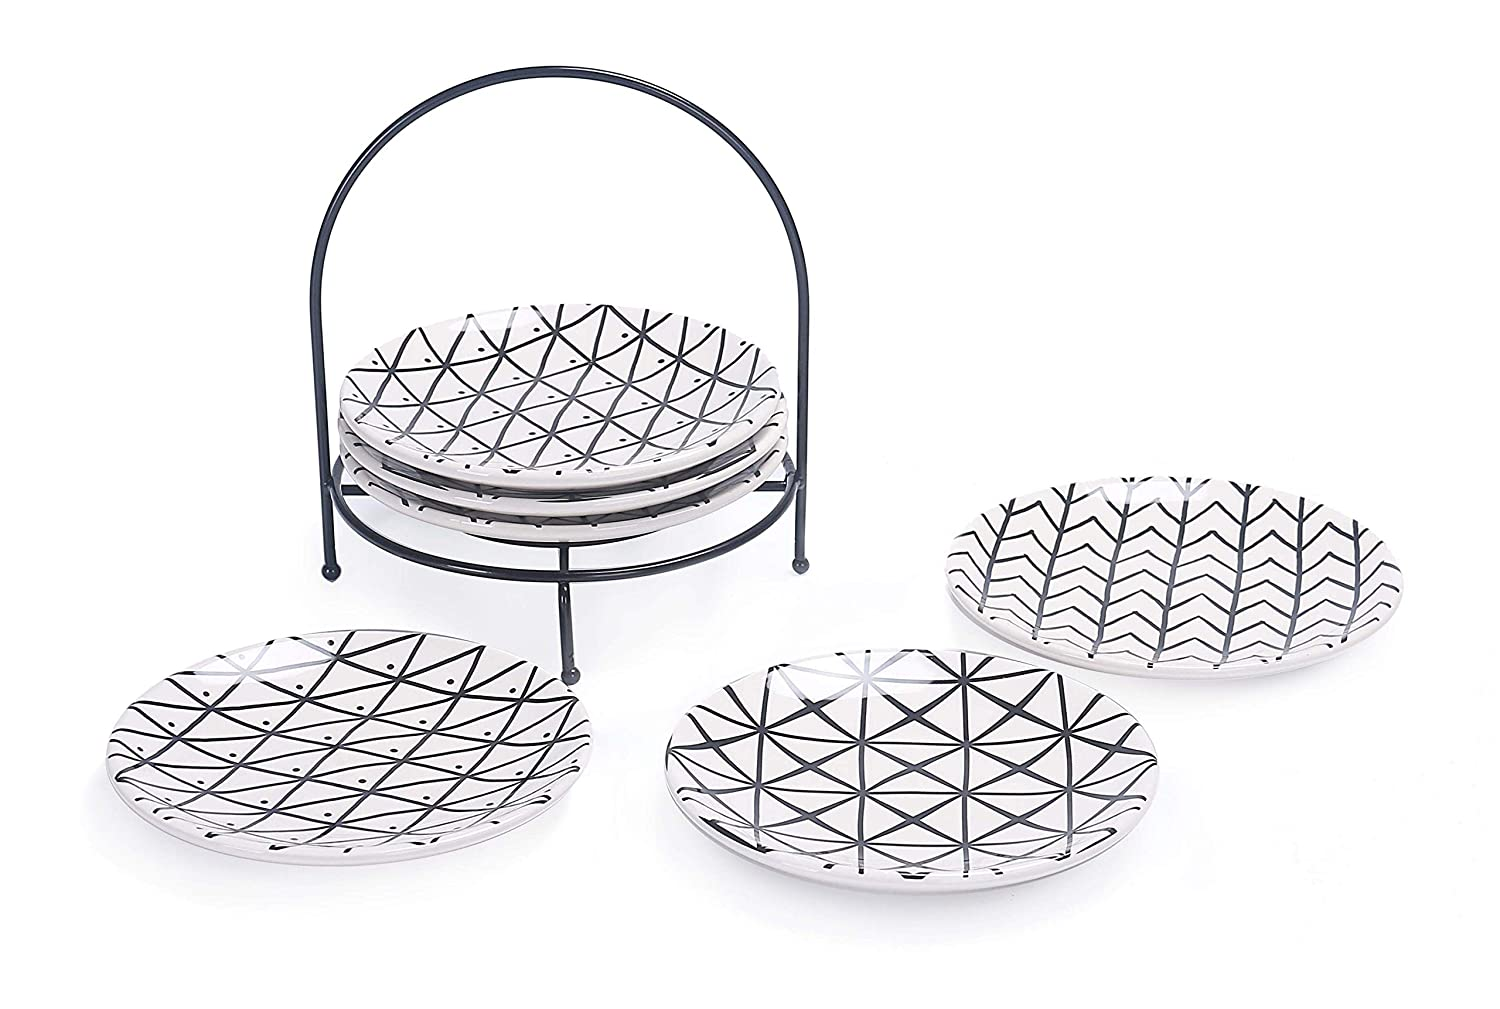 Snacks Bico Linear Black and White 6 inch Ceramic Appetizer Plate with Rack for Salad Appetizer Plates Microwave /& Dishwasher Safe Set of 7